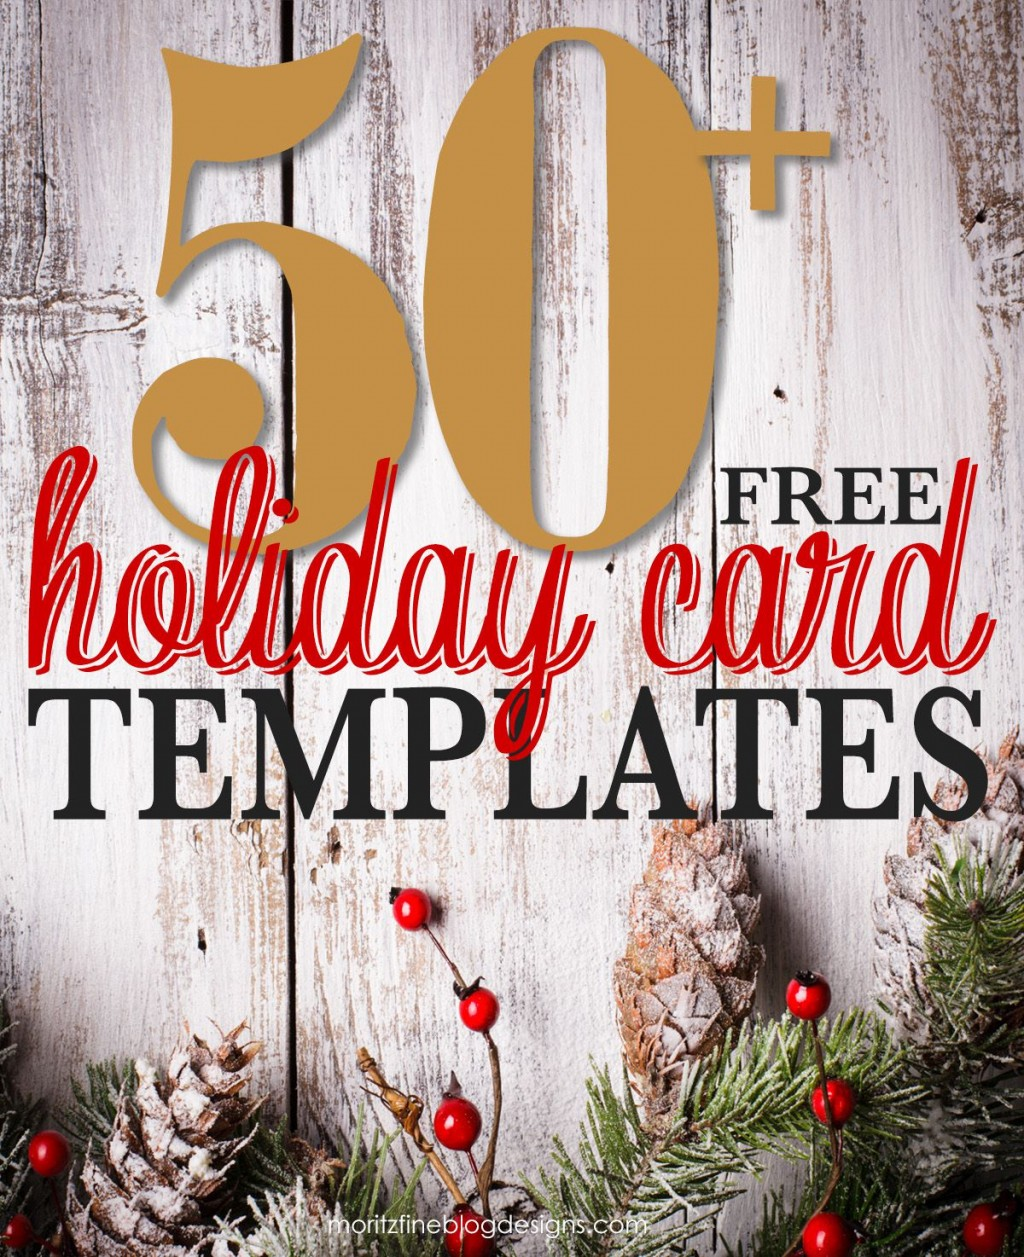 000 Remarkable Free Photo Christma Card Template Concept  Templates For Photoshop OnlineLarge